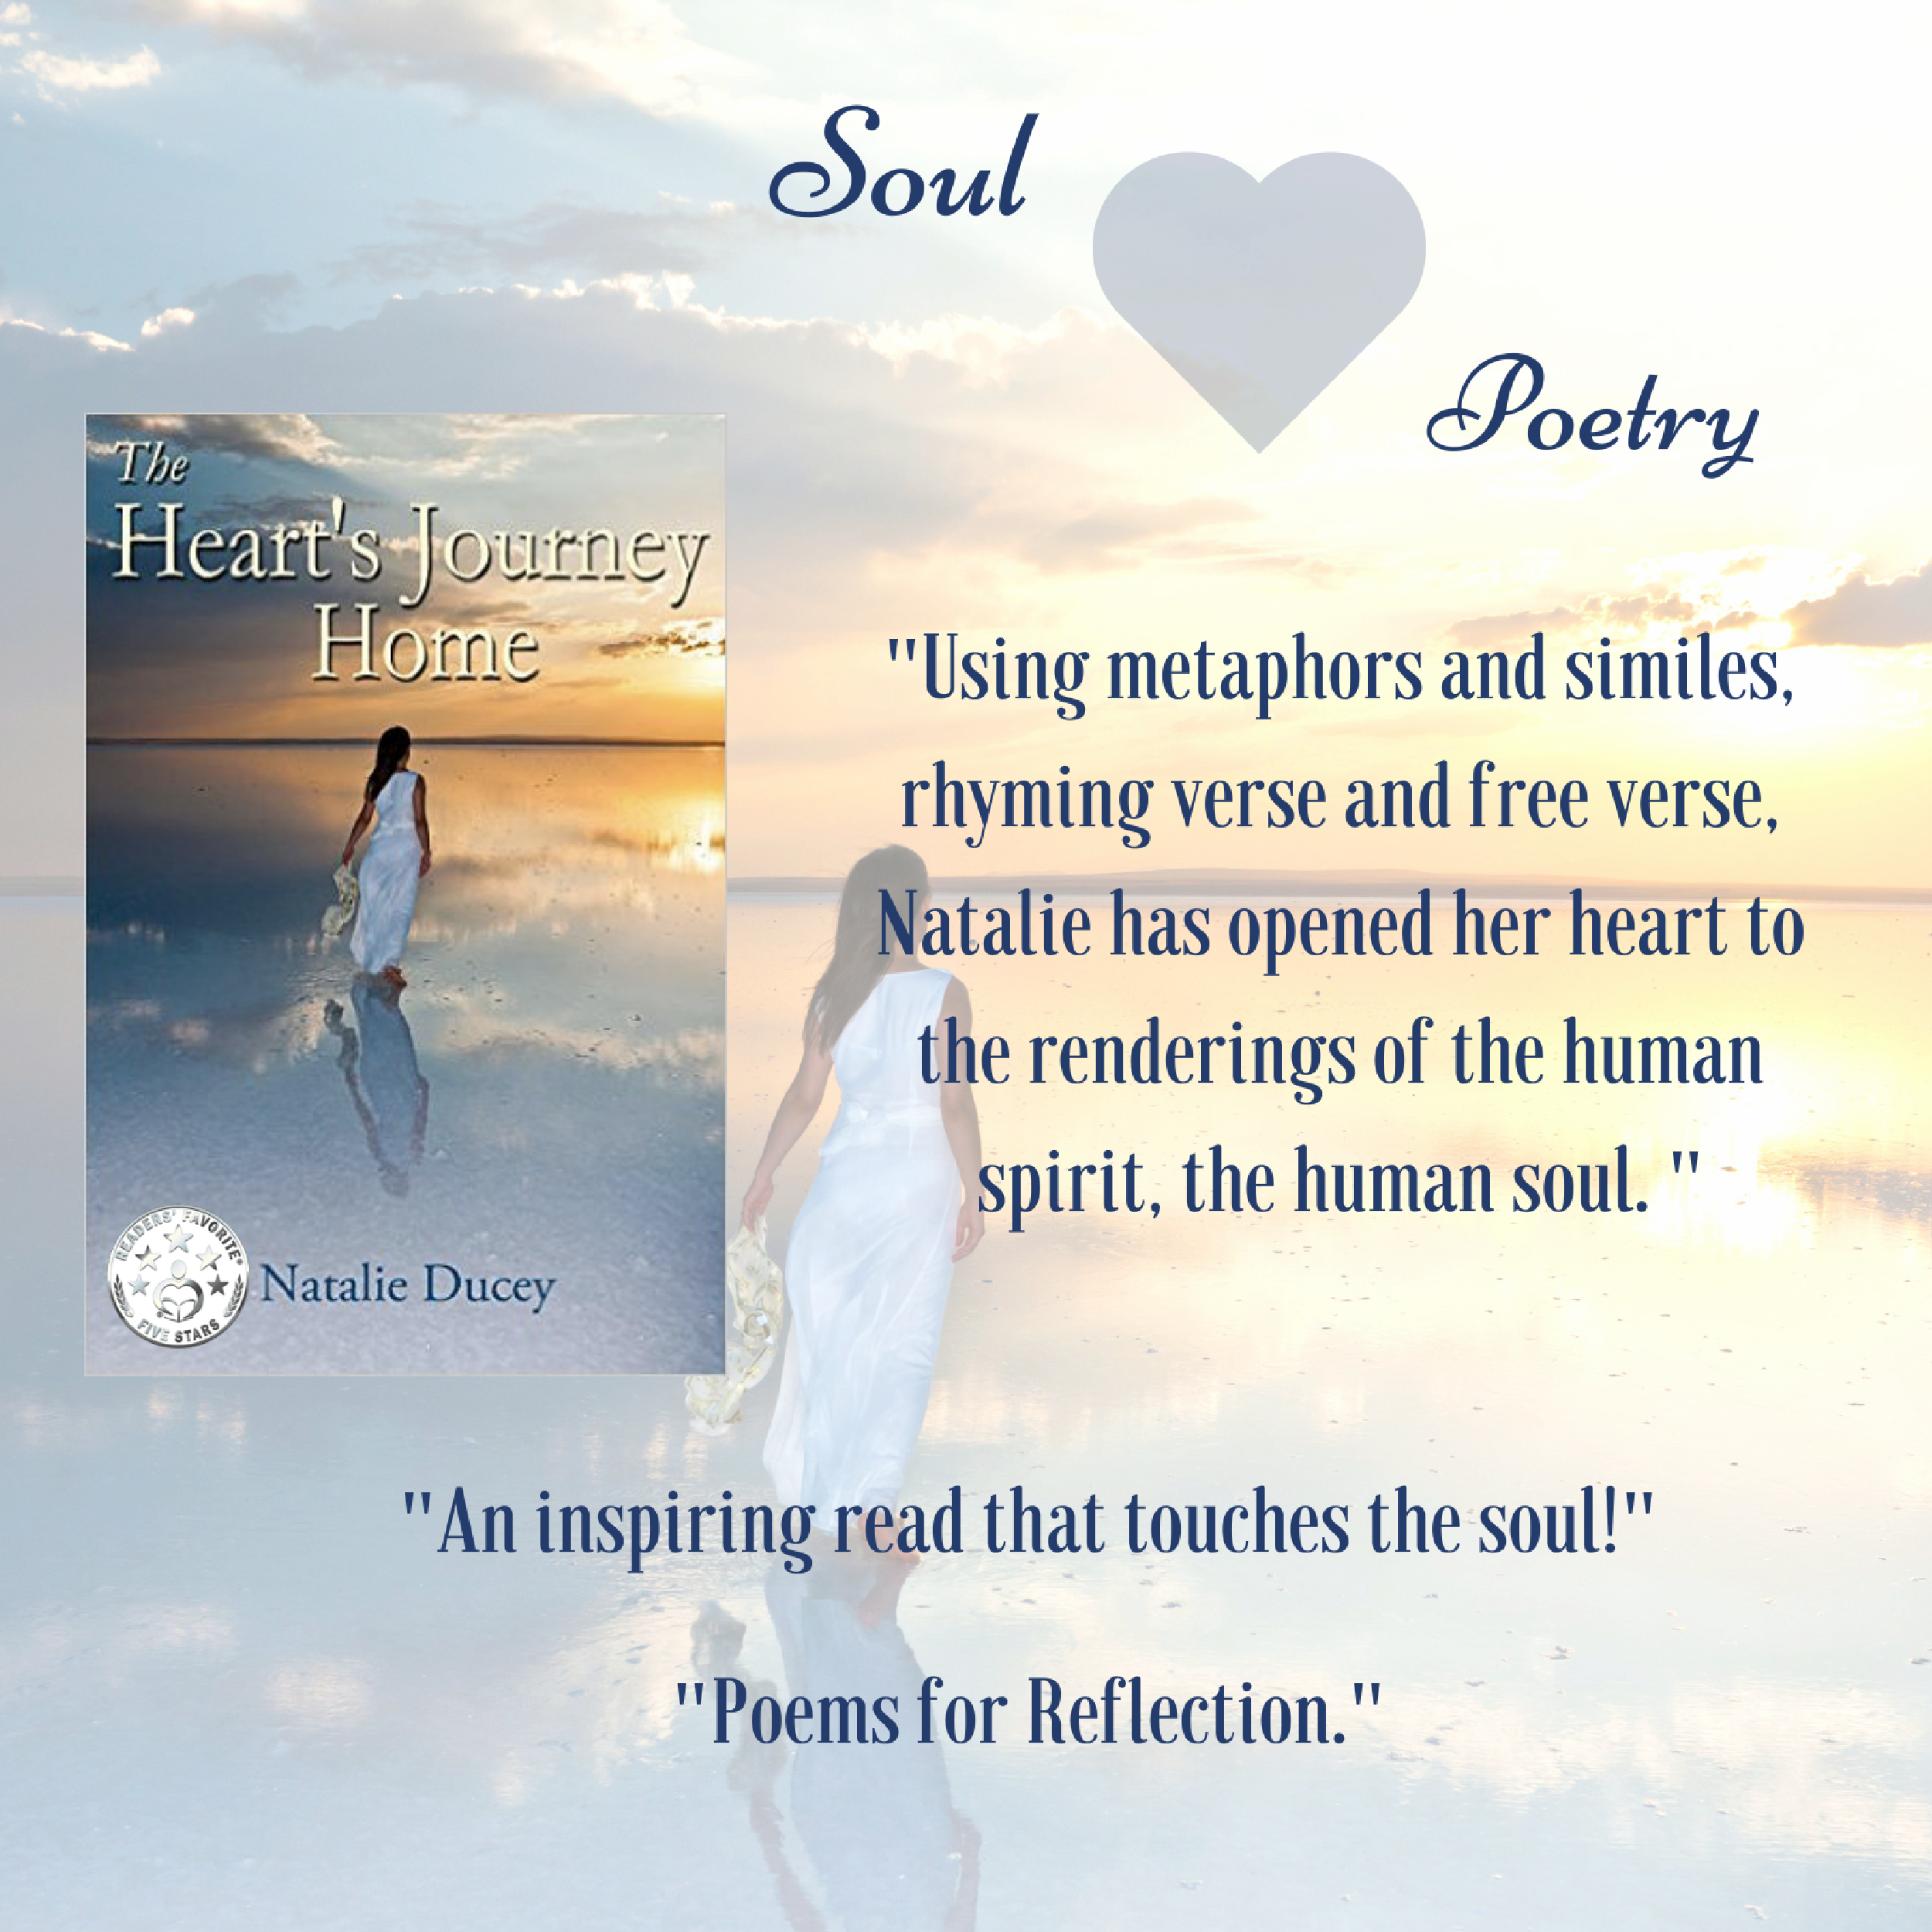 Loss Of Life Quotes The Heart's Journey Homenatalie Duceypoetry Poems Love